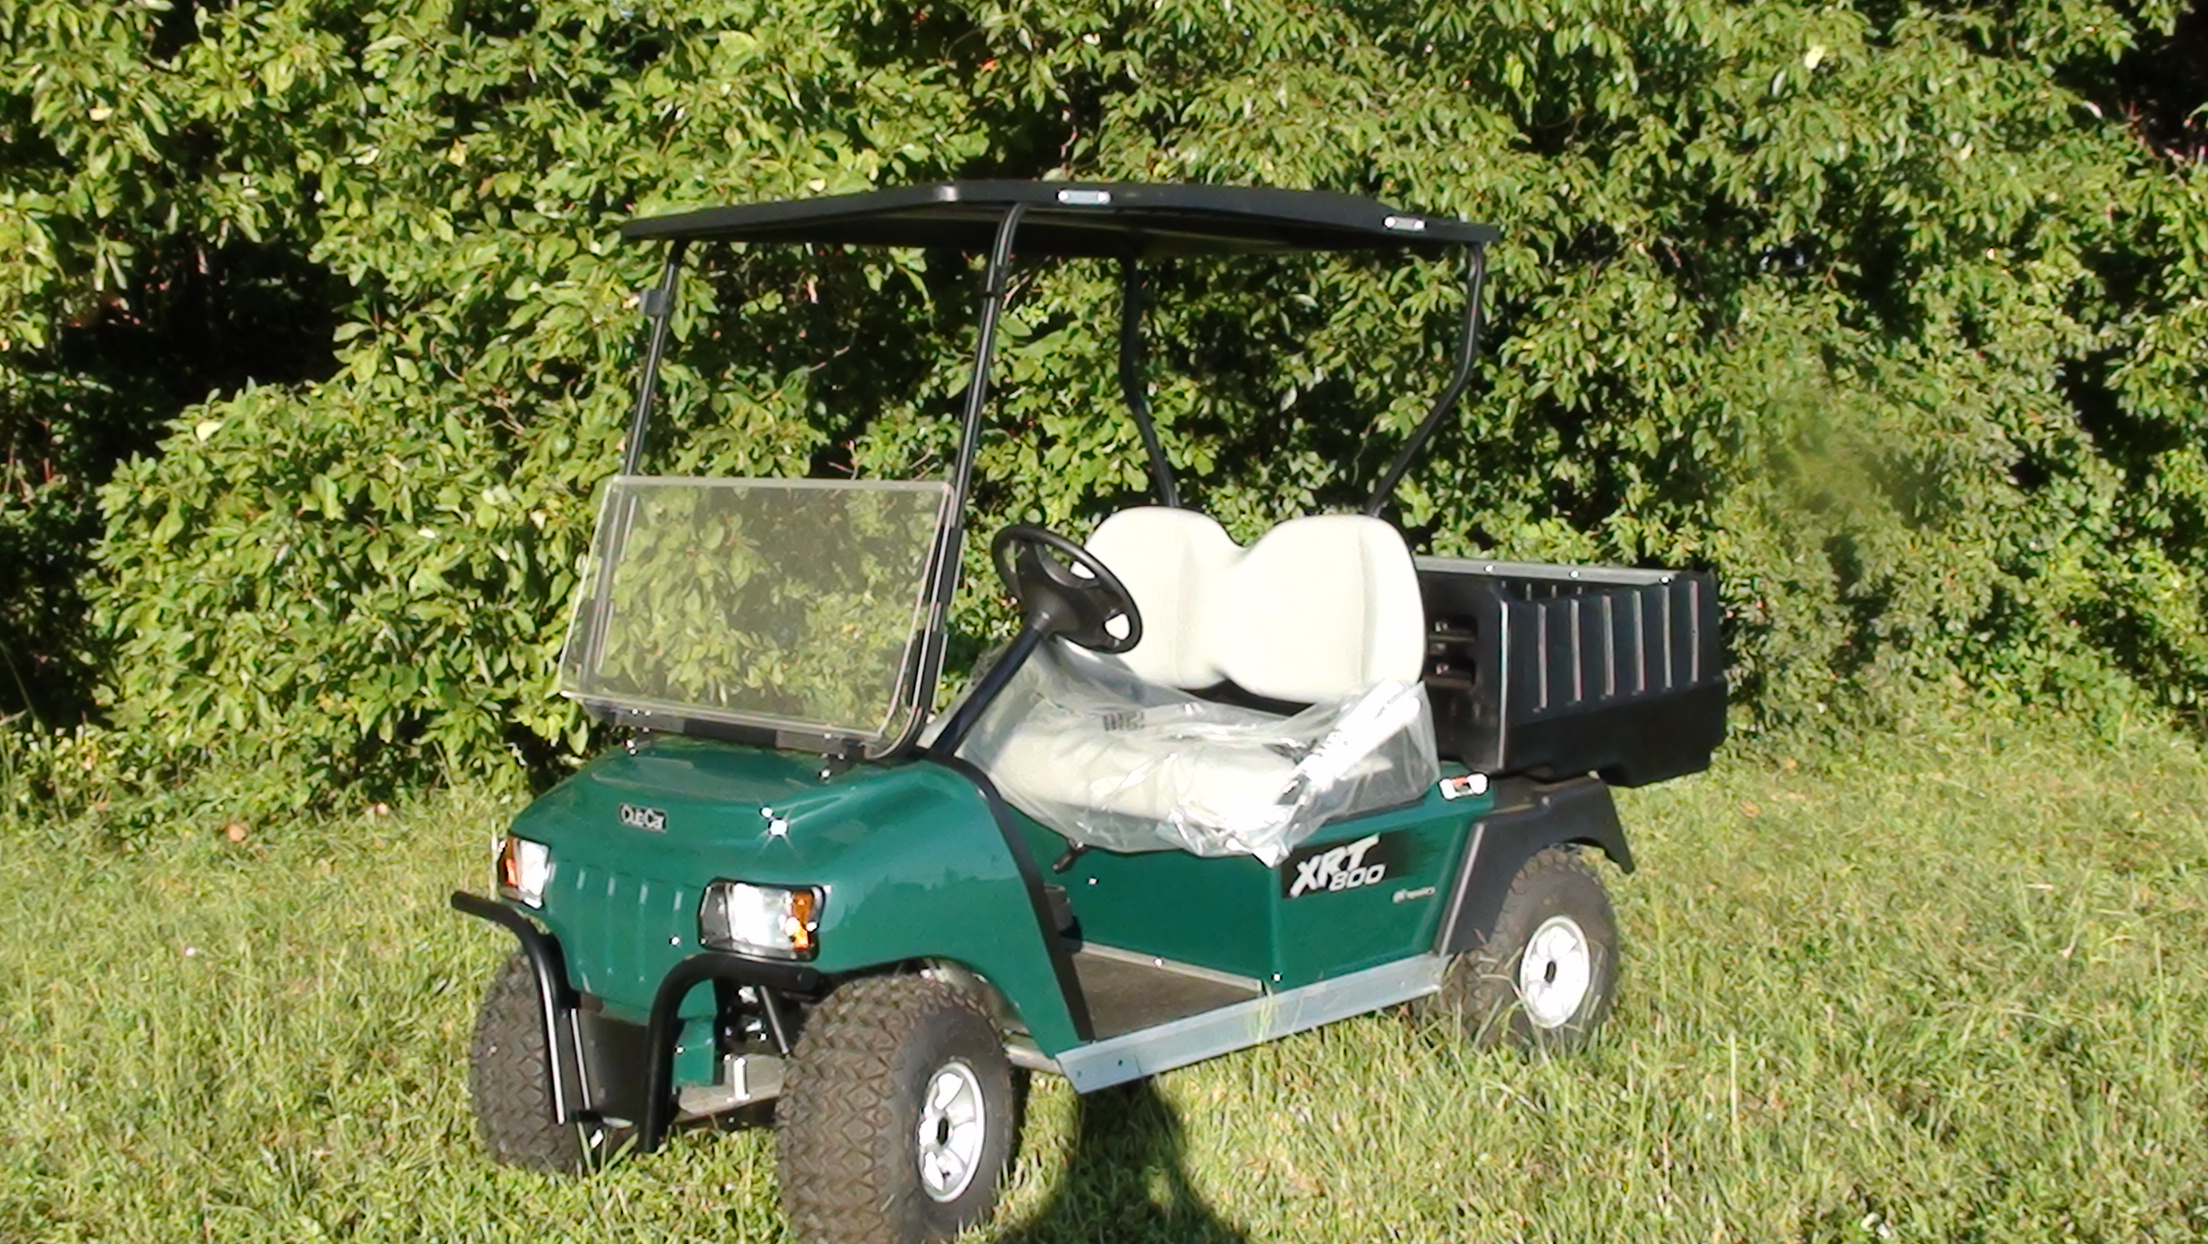 club car questions 97 f250 powerstroke wiring diagram 2015 xrt 800 fuel injected green c and golf